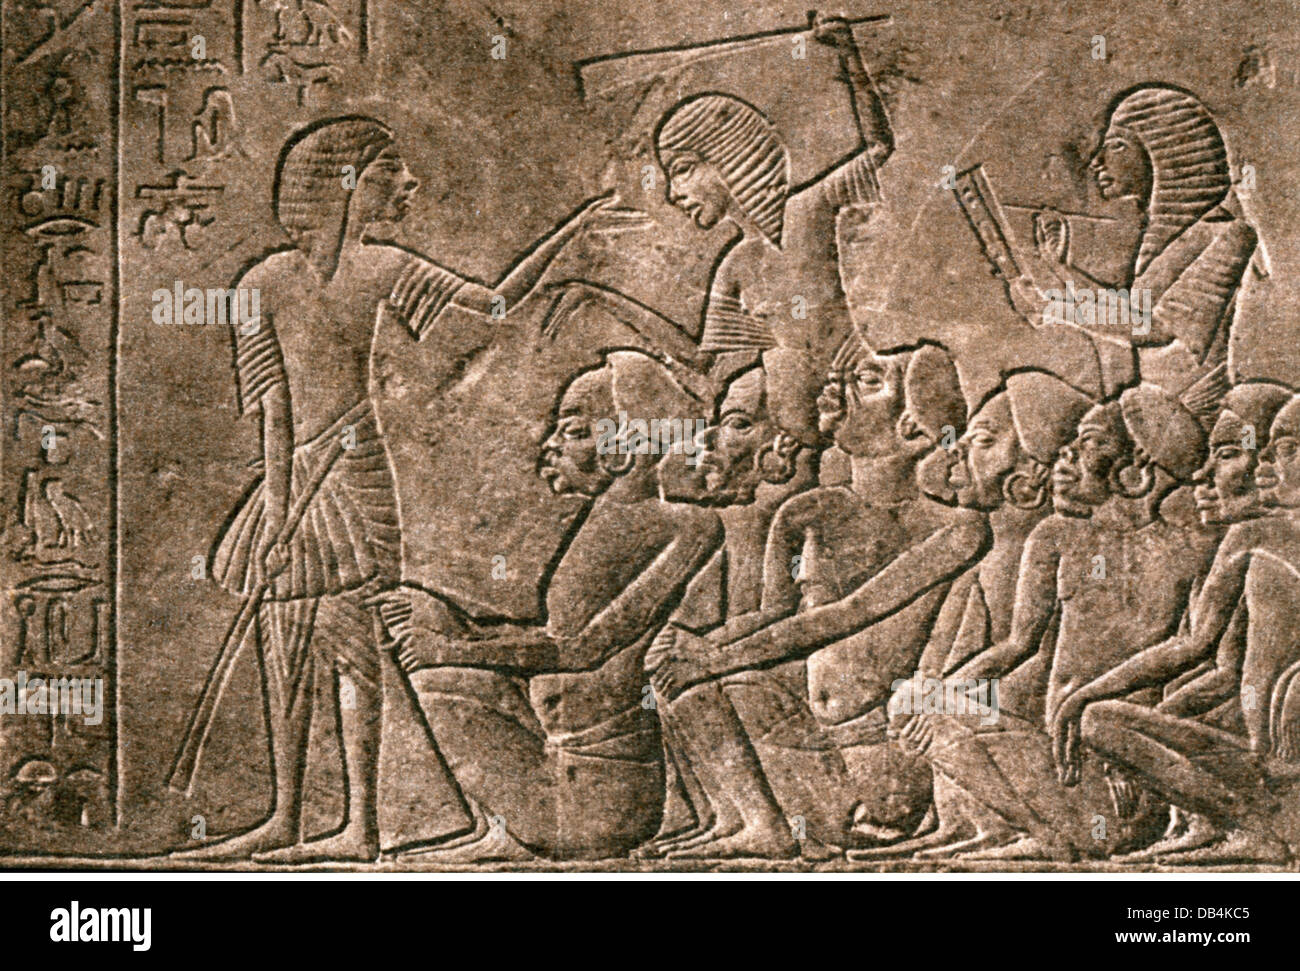 slavery, captured Nubians are registered by a scribe, Egyptian relief, 12th Dynasty (circa 2100 - 1750 BC), suppression, Stock Photo